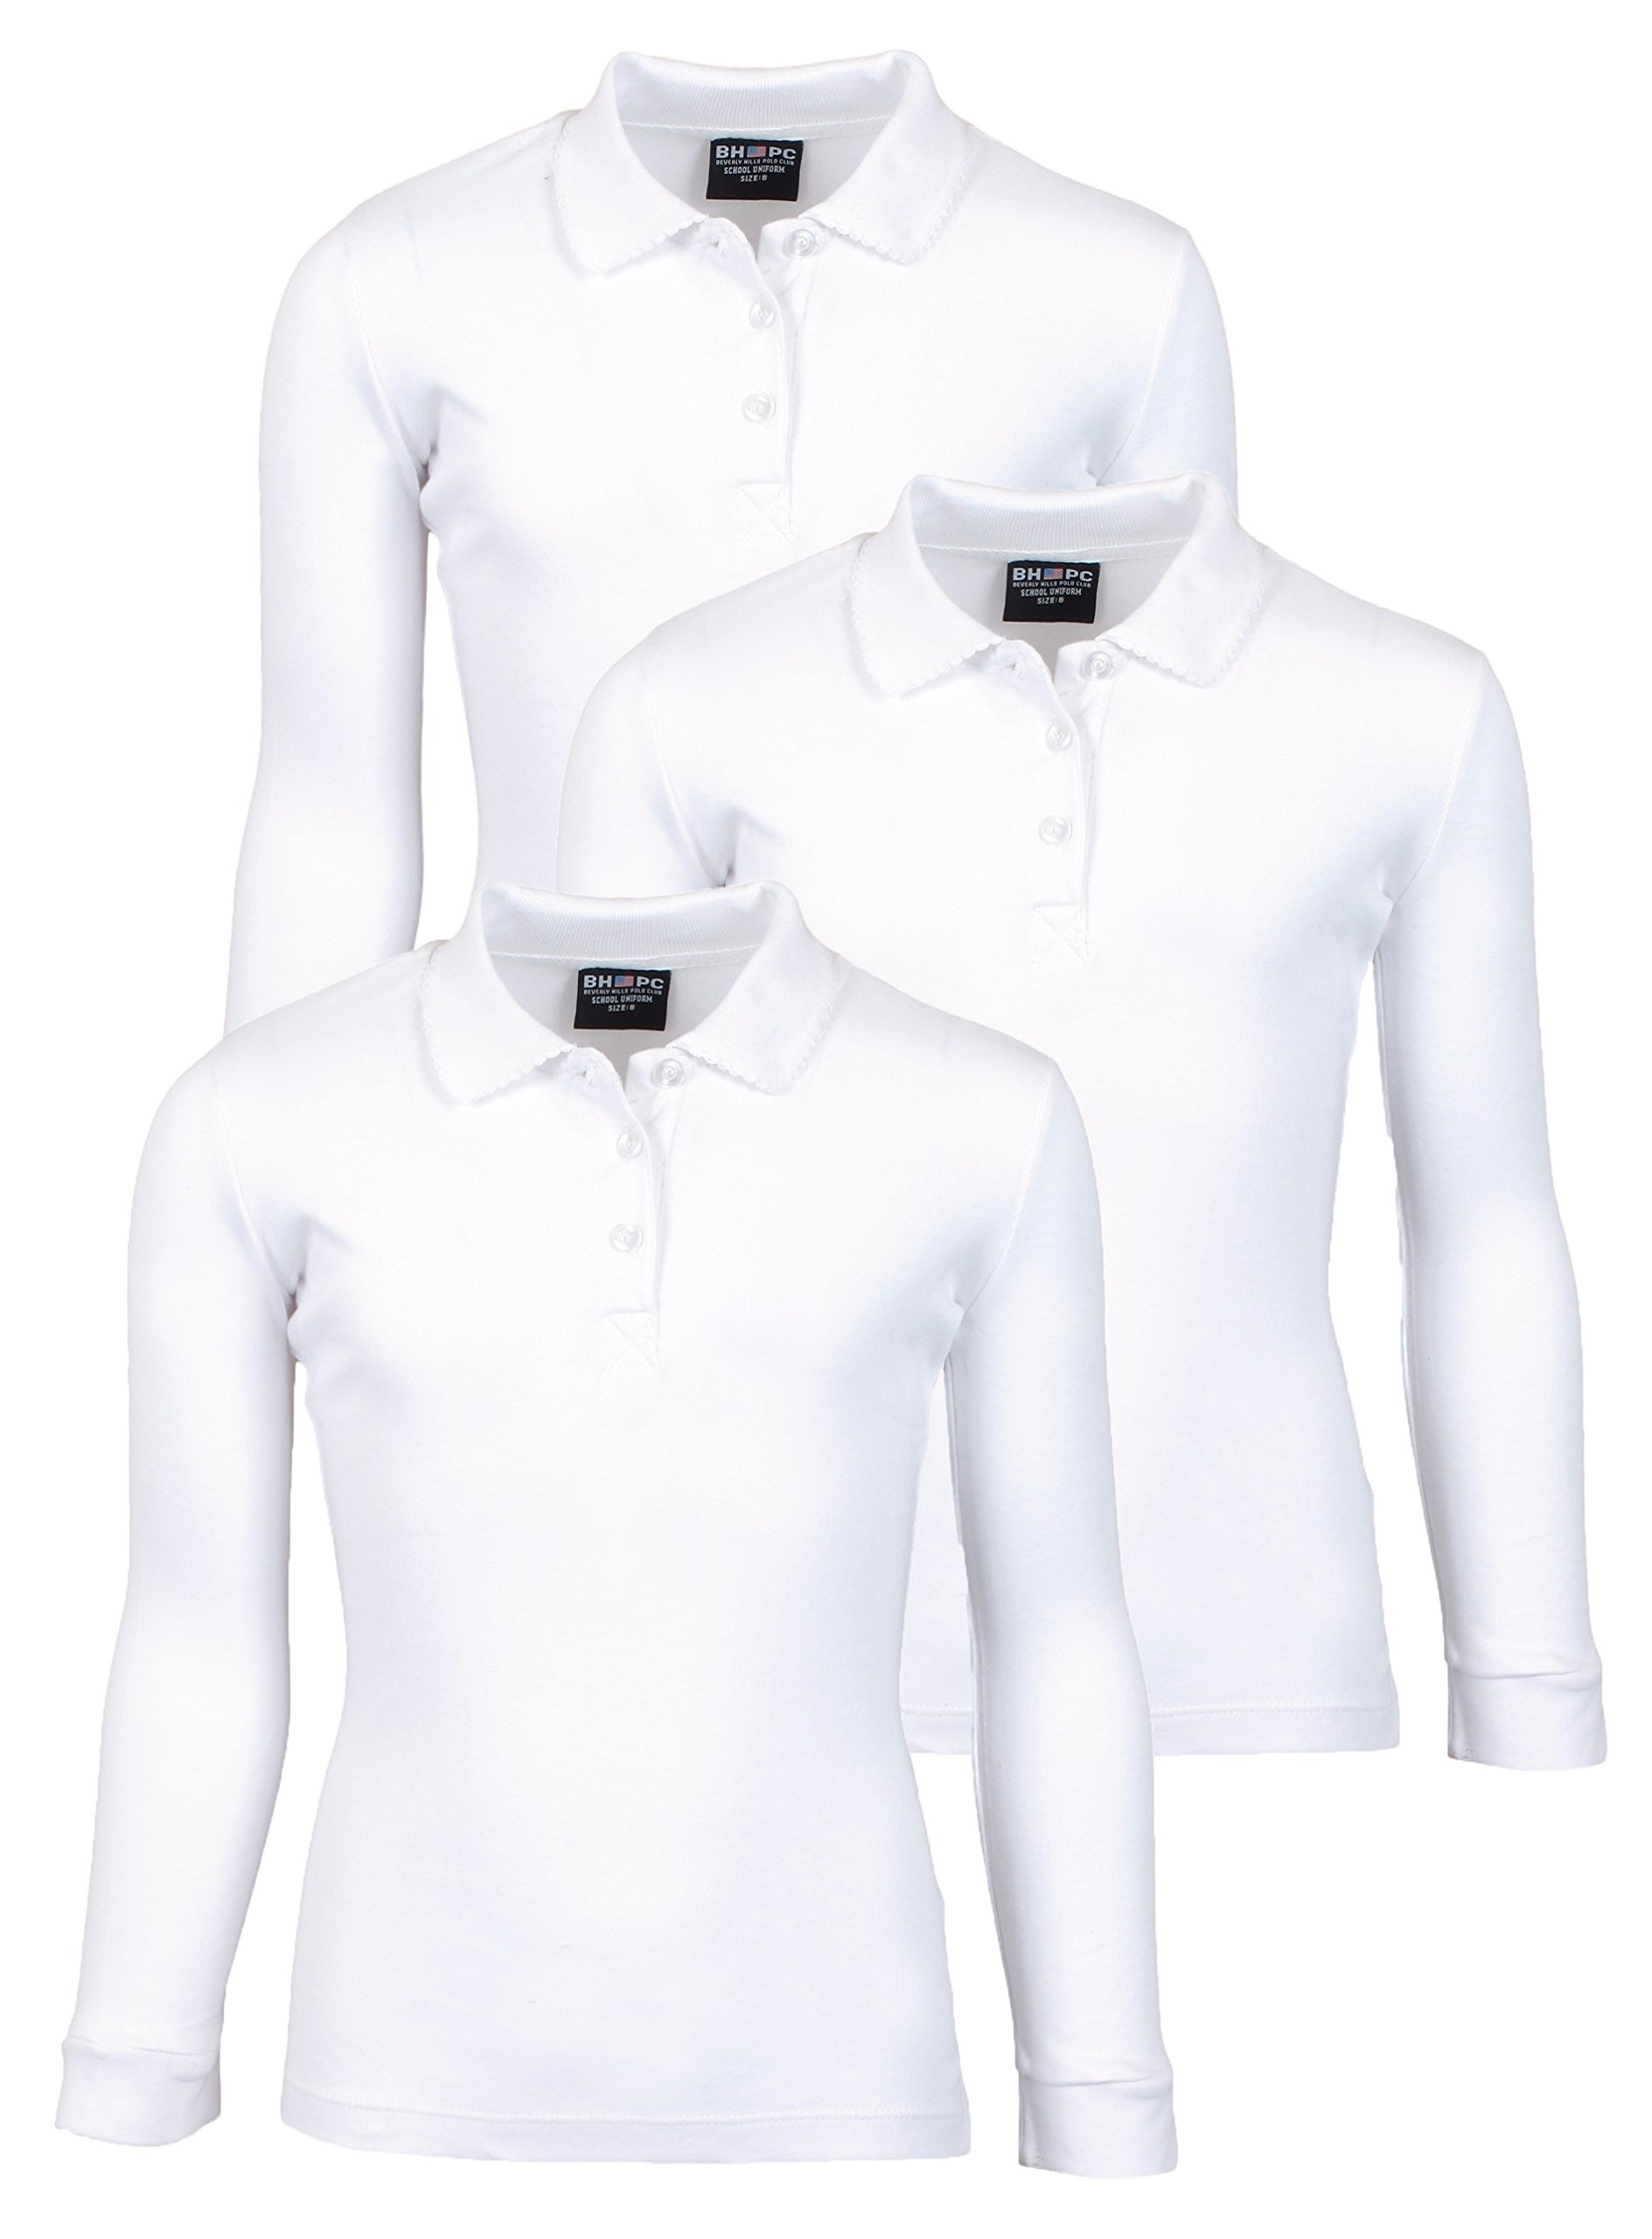 Beverly Hills Polo Club 3 Pack of Girls' Long Sleeve Interlock Uniform Polo Shirts, Size 14, White' by Beverly Hills Polo Club